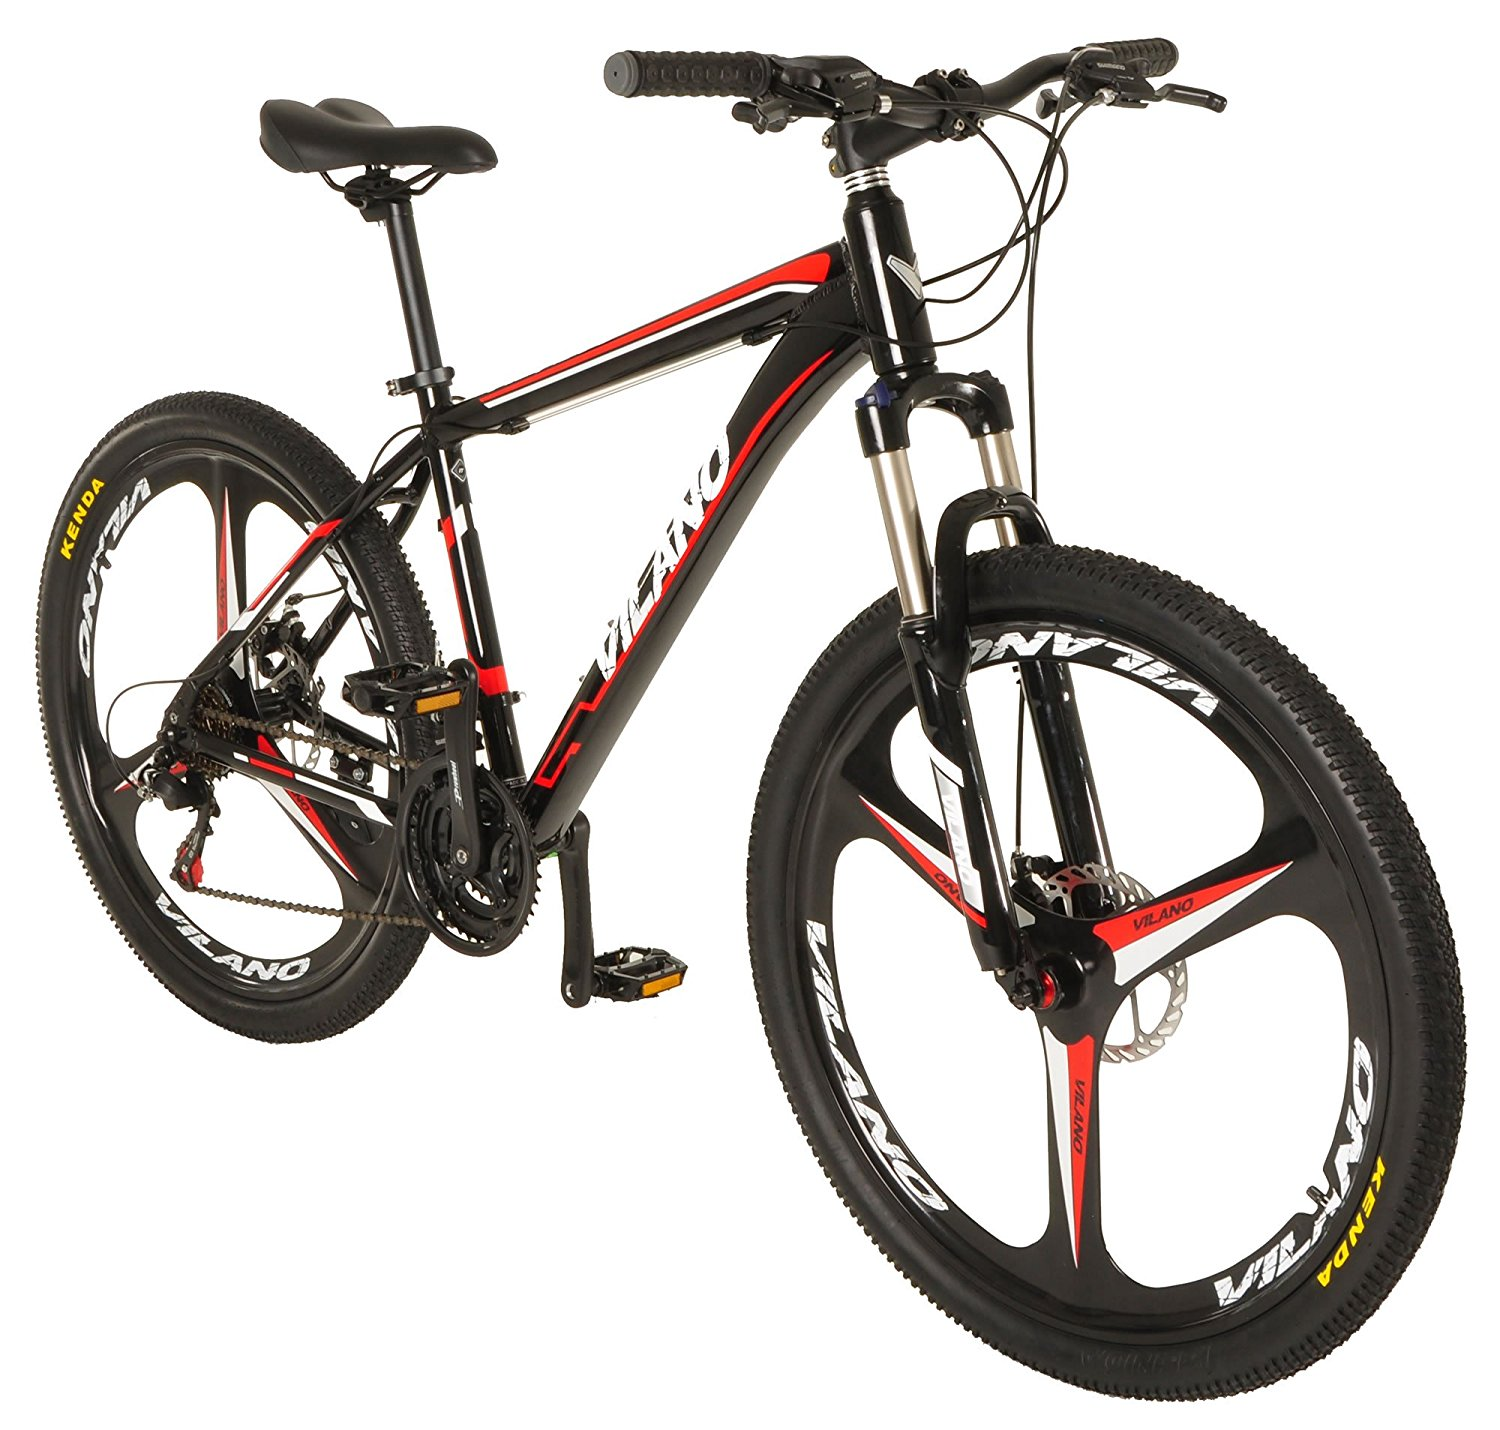 Top Mountain Bikes Under 500 Dollars